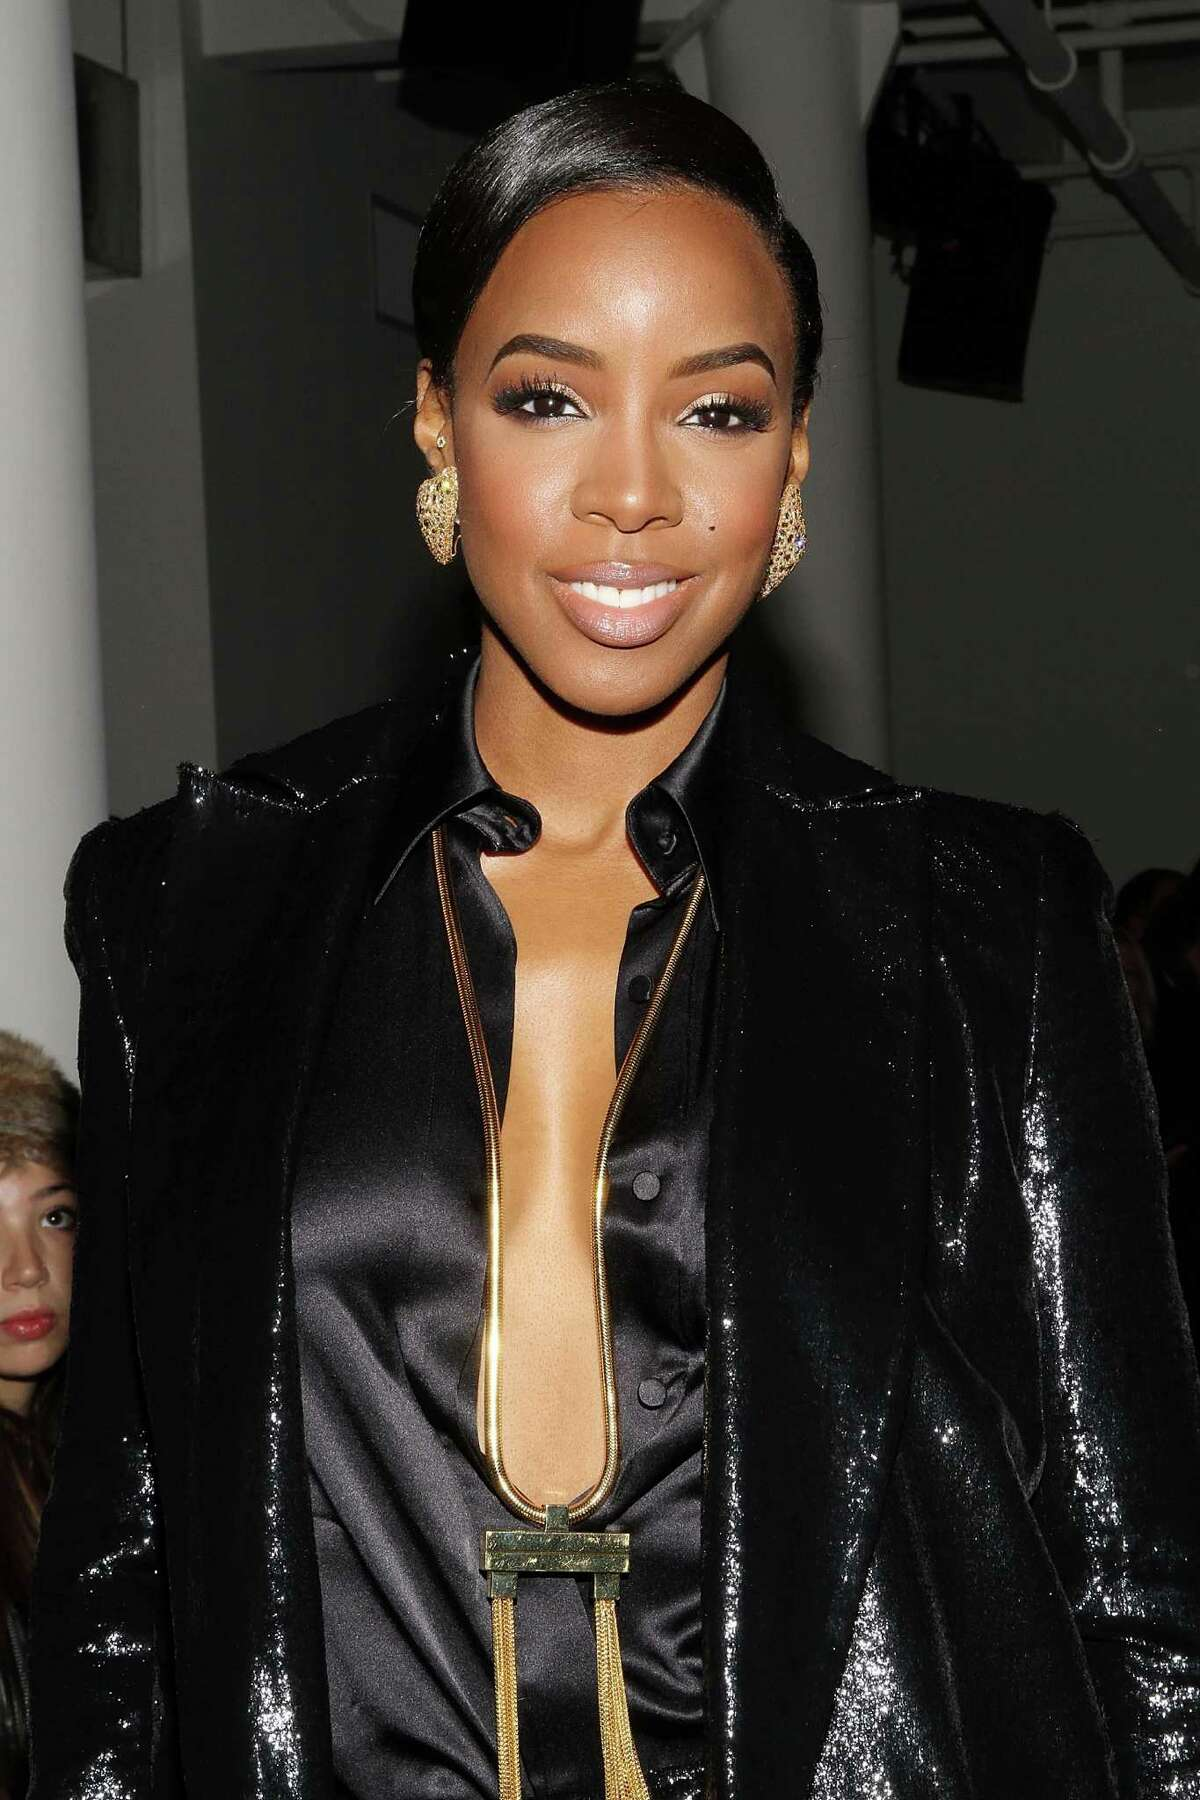 Former Destiny's Child member Kelly Rowland was born in Atlanta, Georgia, but grew up in Houston. (And in case you're wondering: The third Destiny's Child, Michelle Williams, was born in Rockford, Illinois.)